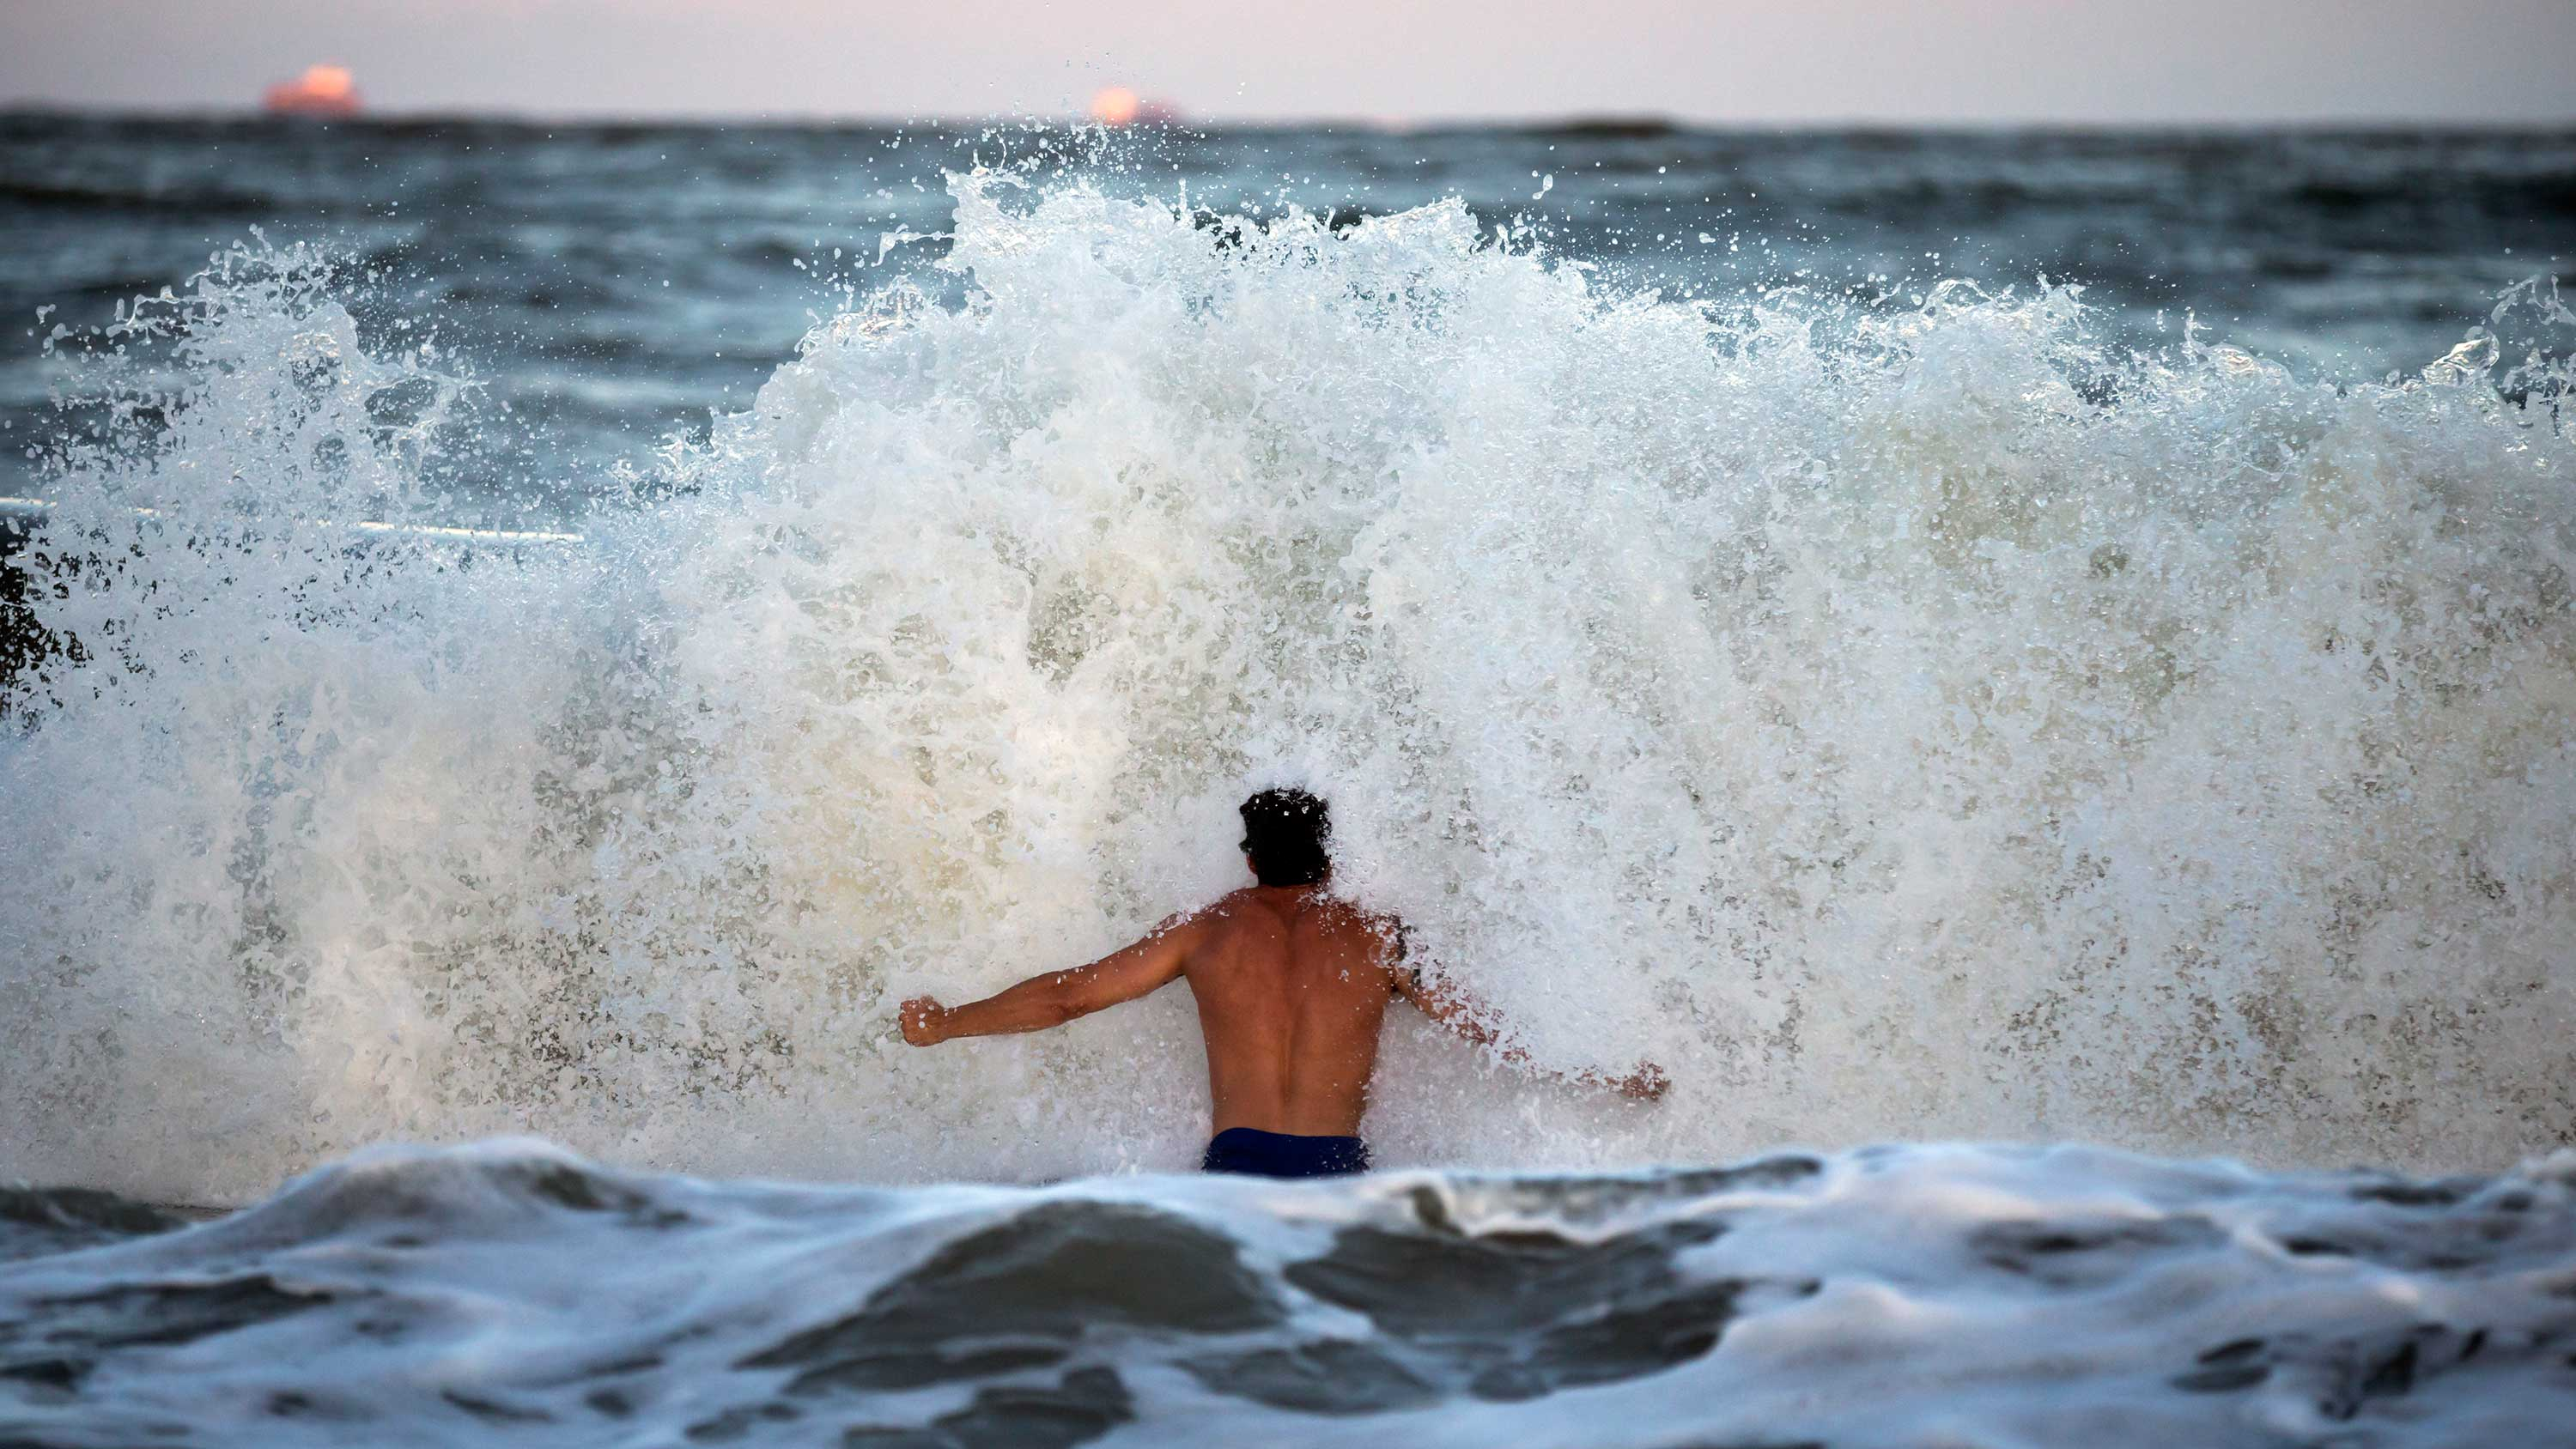 <div class='meta'><div class='origin-logo' data-origin='none'></div><span class='caption-text' data-credit='Stephen B. Morton/AP Photo'>Body surfer Andrew Vanotteren, of Savannah, Ga., crashes into waves from Hurricane Florence, Wednesday, Sept., 12, 2018, on the south beach of Tybee Island, Ga.</span></div>